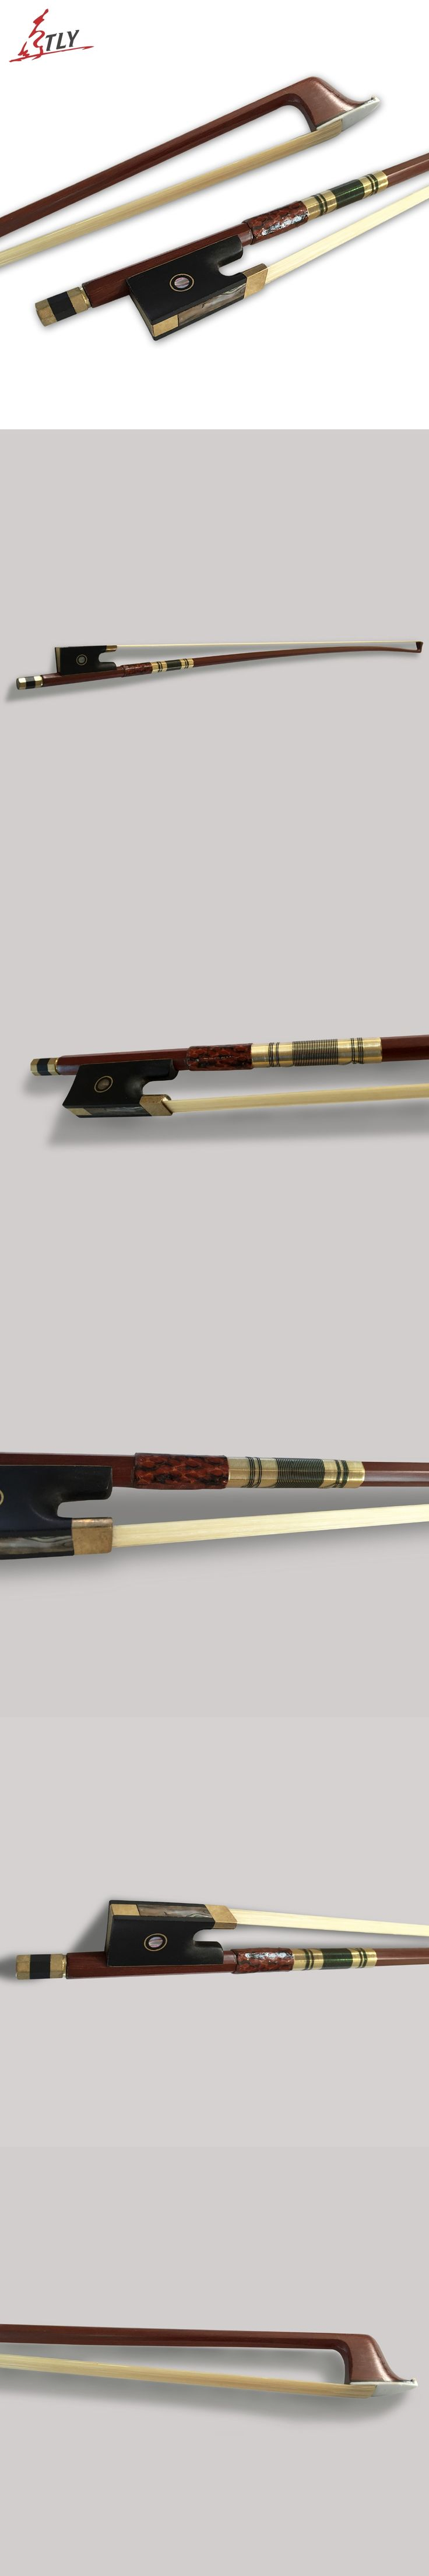 Factory Store 4/4 Violin Bow Ebony Frog w/ Colored Shell Snakeskin Wrapped Straight Brazilwood Fiddle Violino Bow Violin Parts